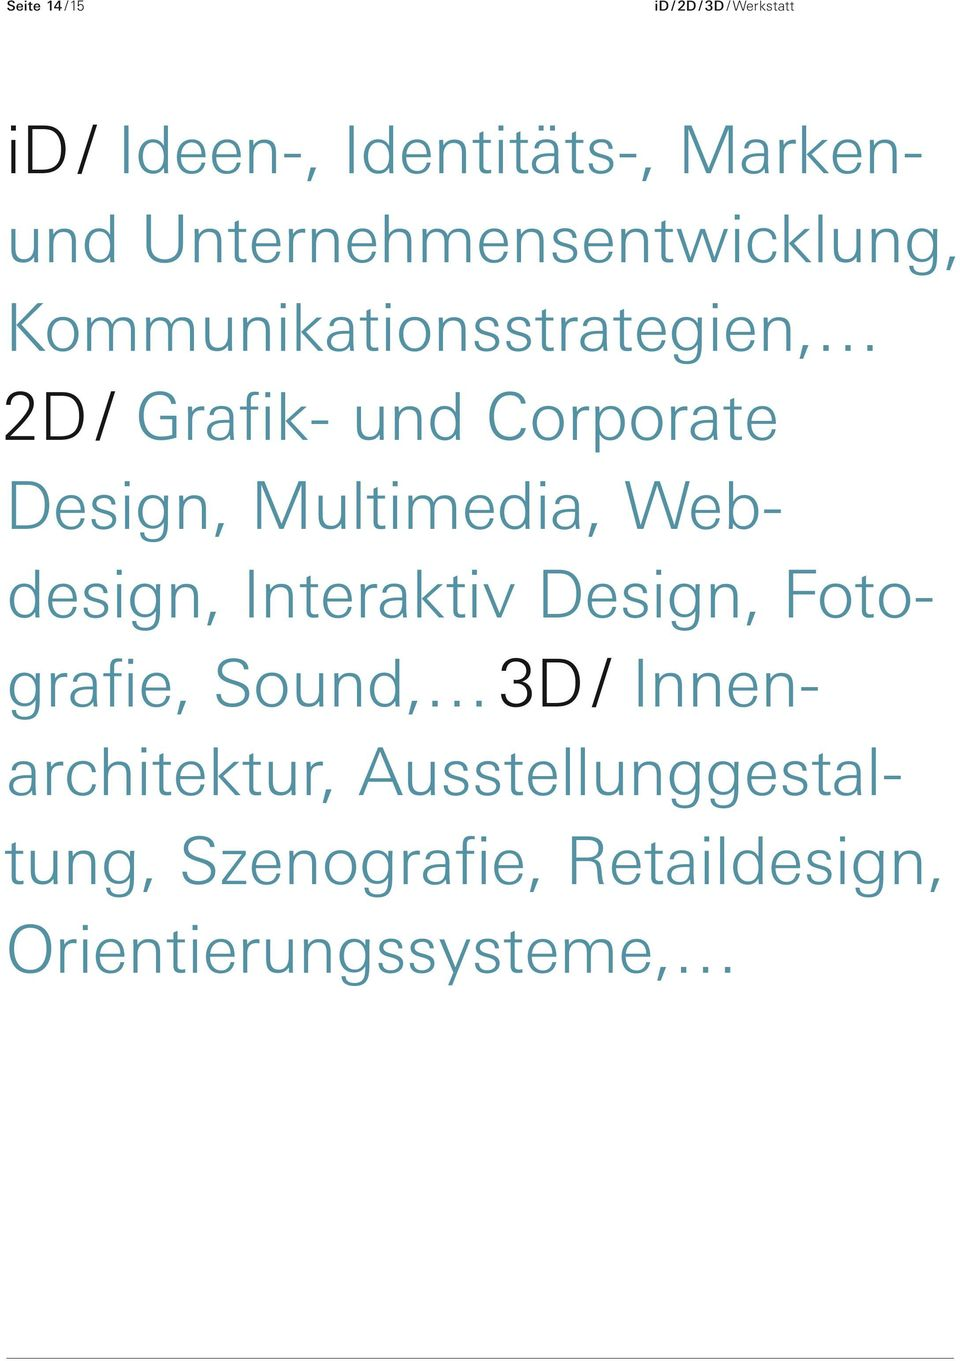 Design, Multimedia, Webdesign, Interaktiv Design, Fotografie, Sound, 3D /